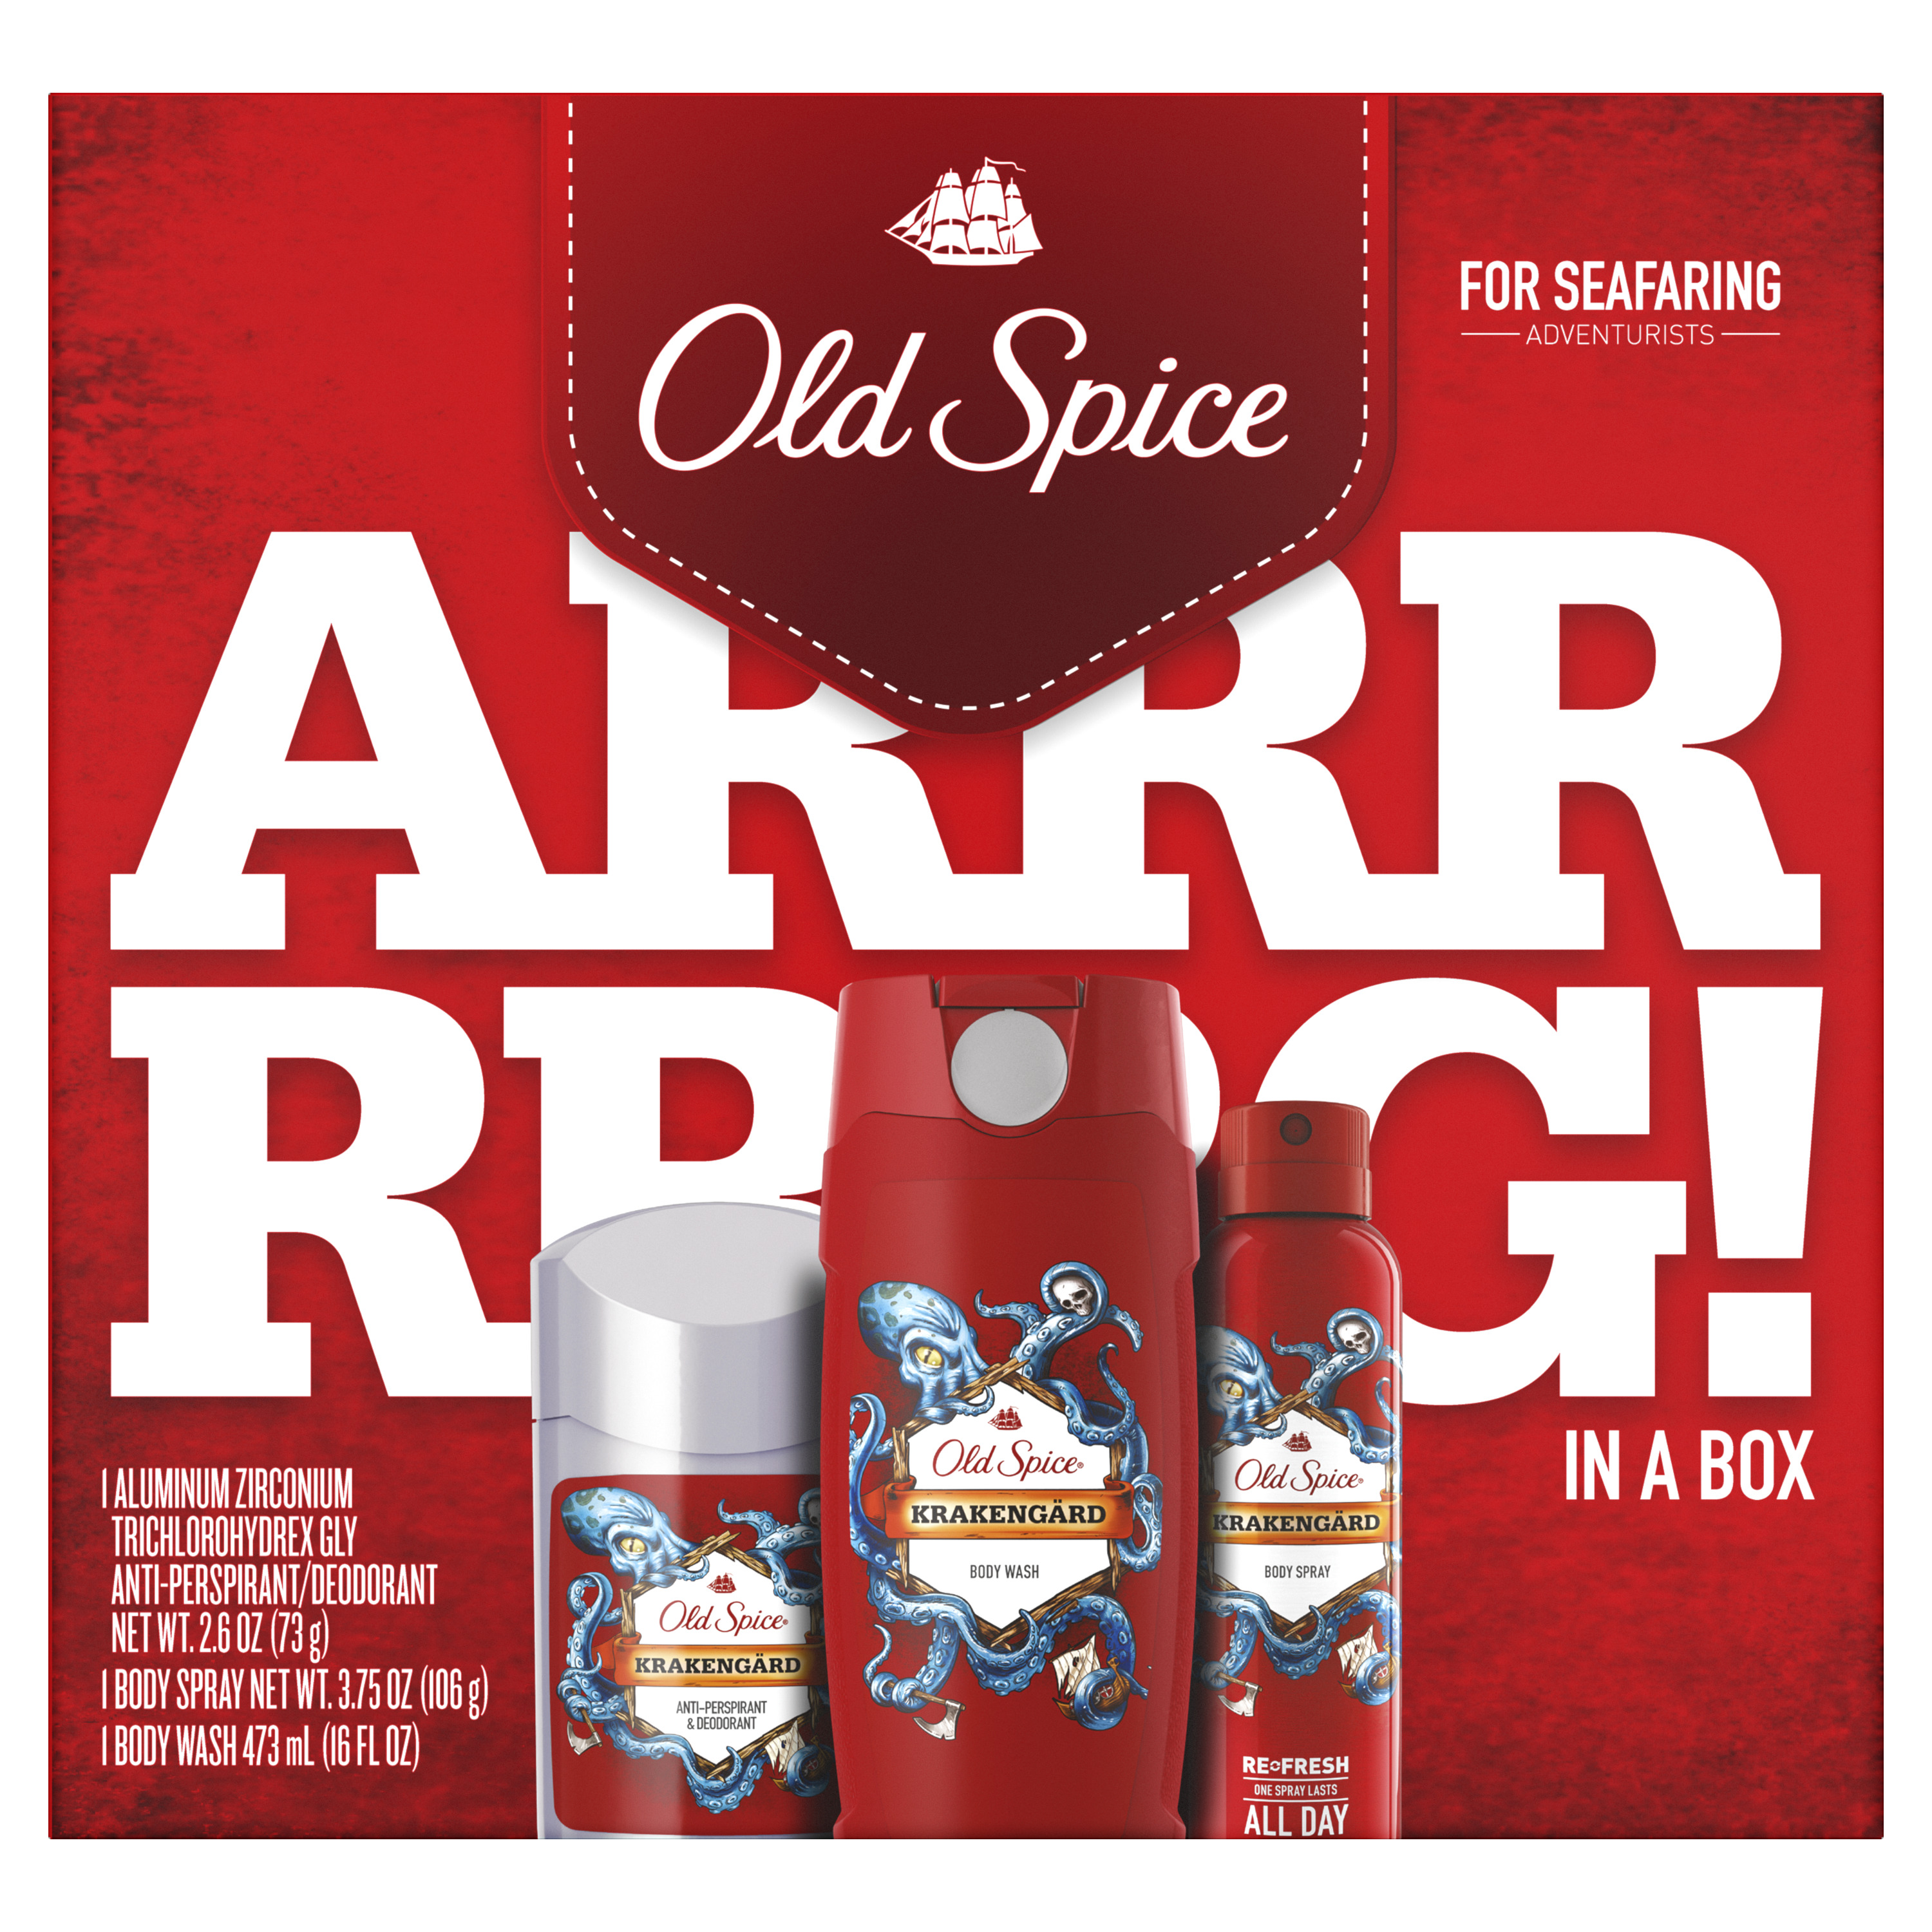 Old Spice Krakengard Antiperspirant and Deodorant + Body Wash + Body Spray, Gift Pack